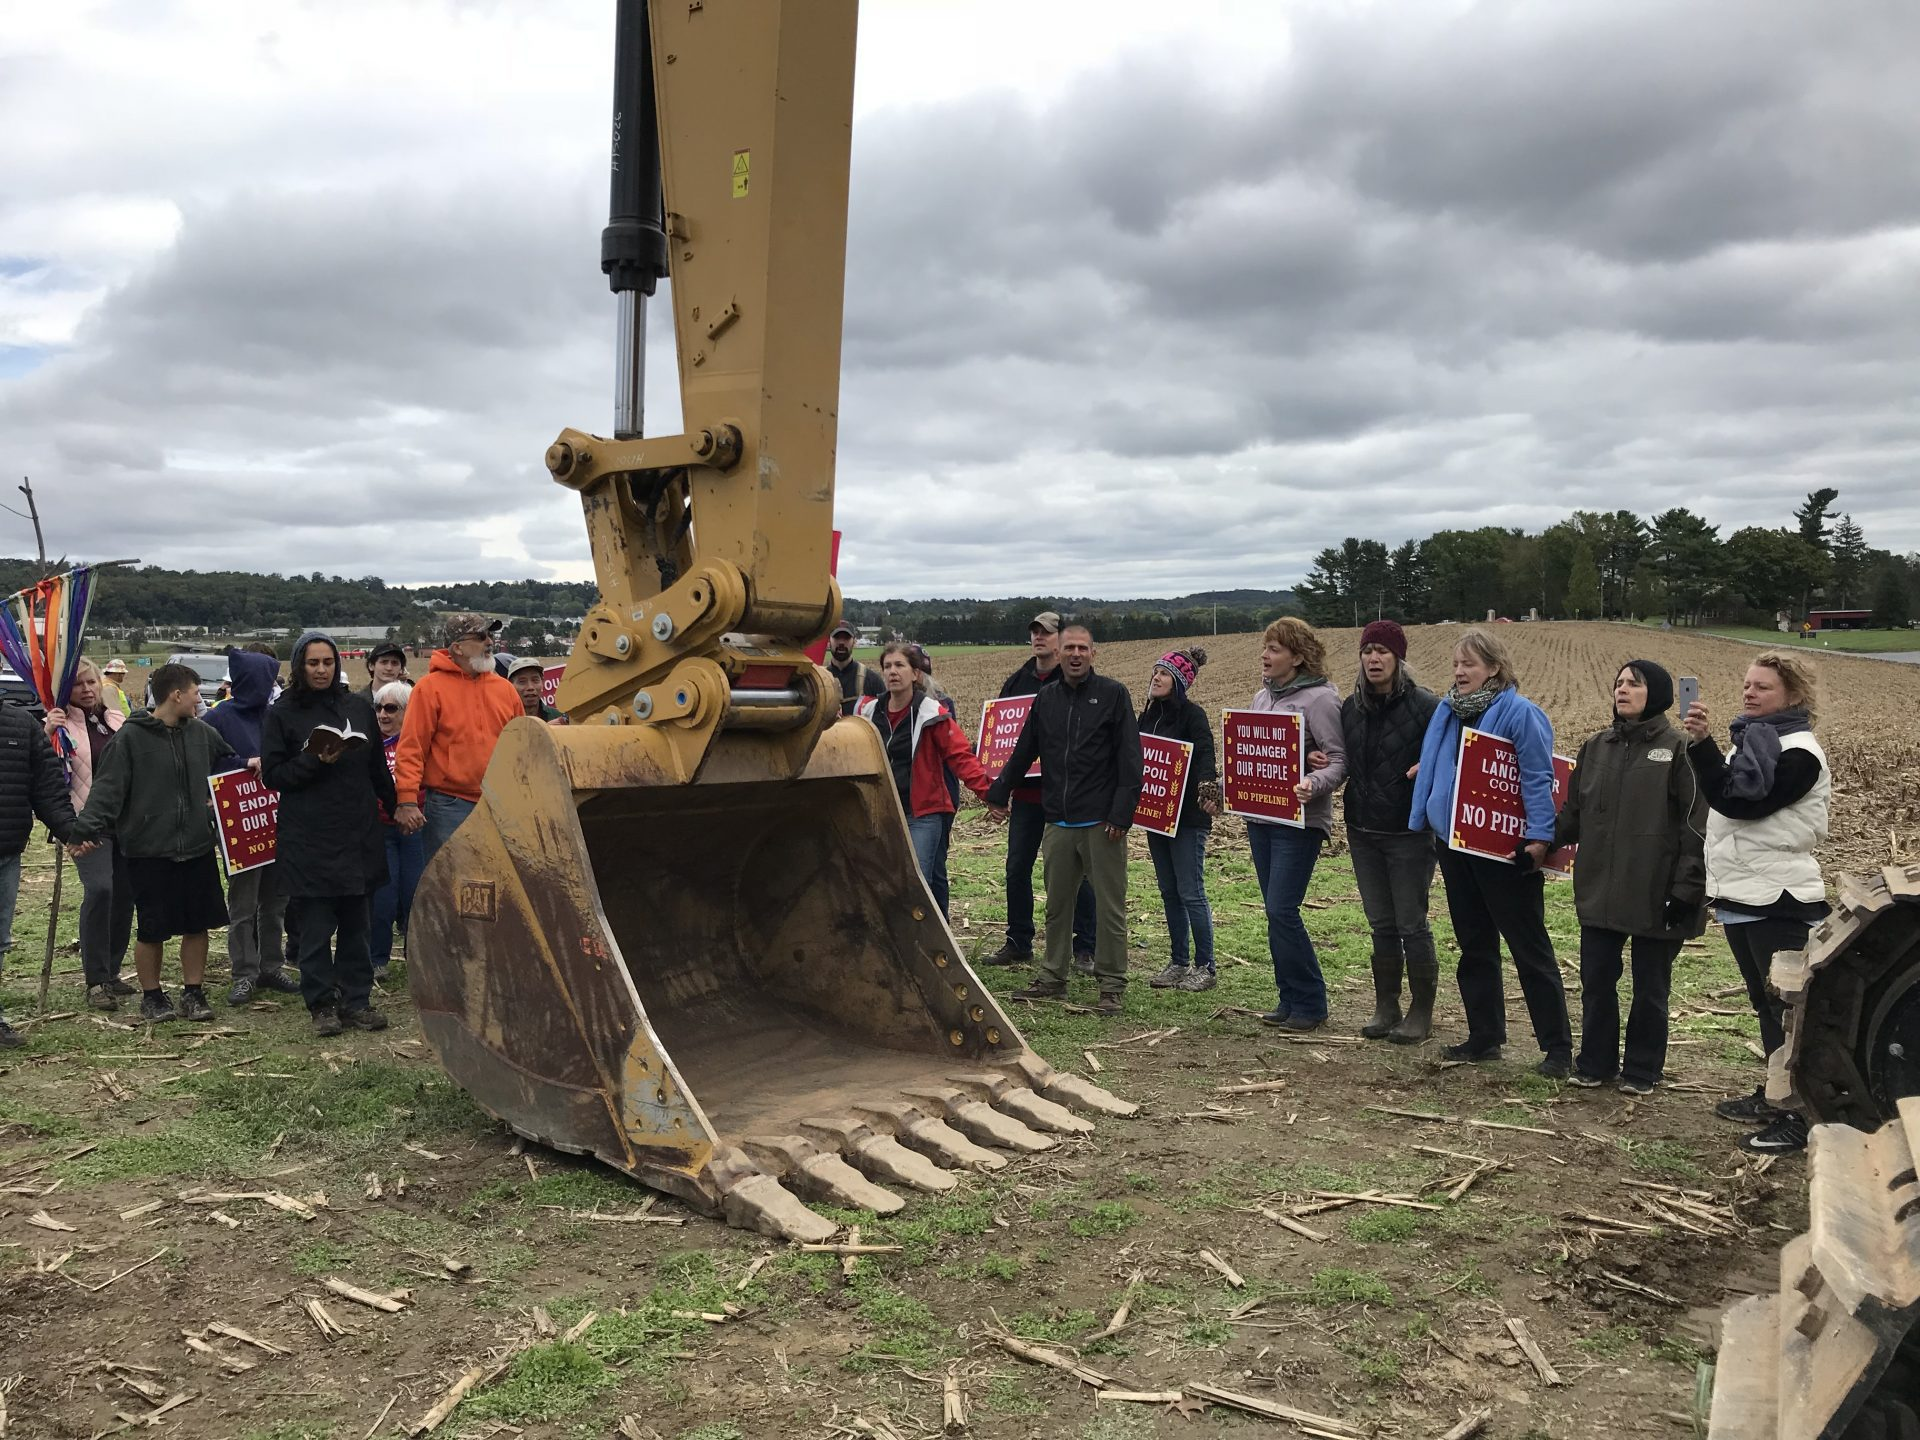 Trespass charges dropped against Atlantic Sunrise pipeline